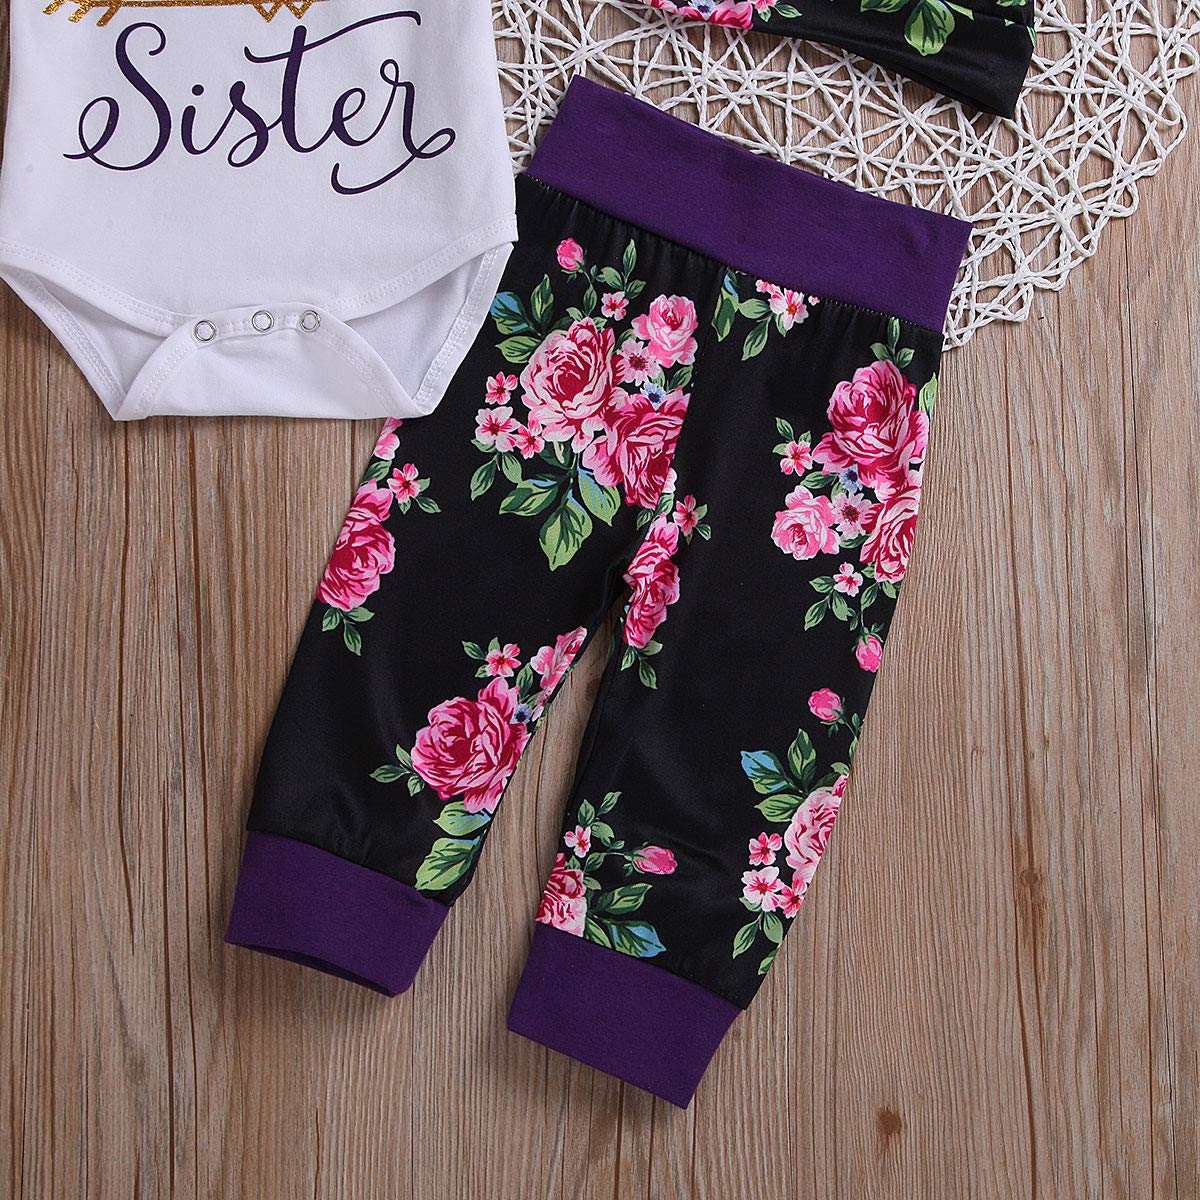 Girls Matching Outfits Little and Big Sister T-Shirt Romper Floral Pants Set